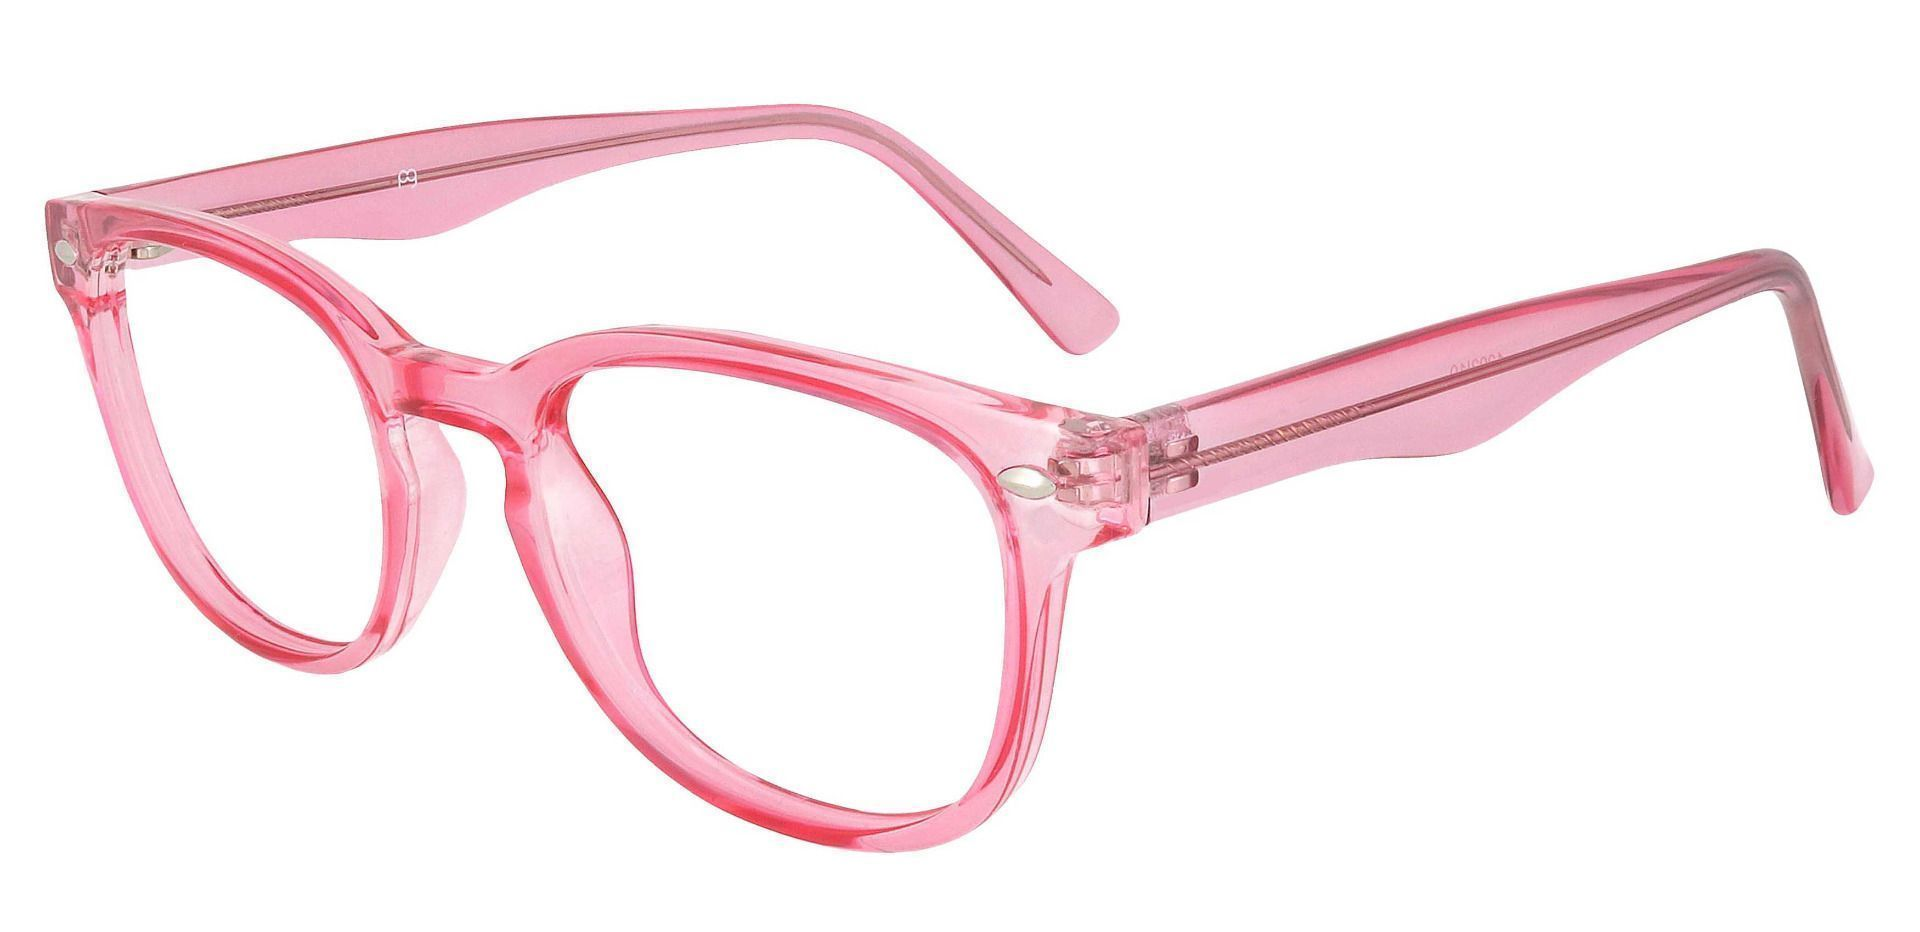 Swirl Classic Square Lined Bifocal Glasses - Pink